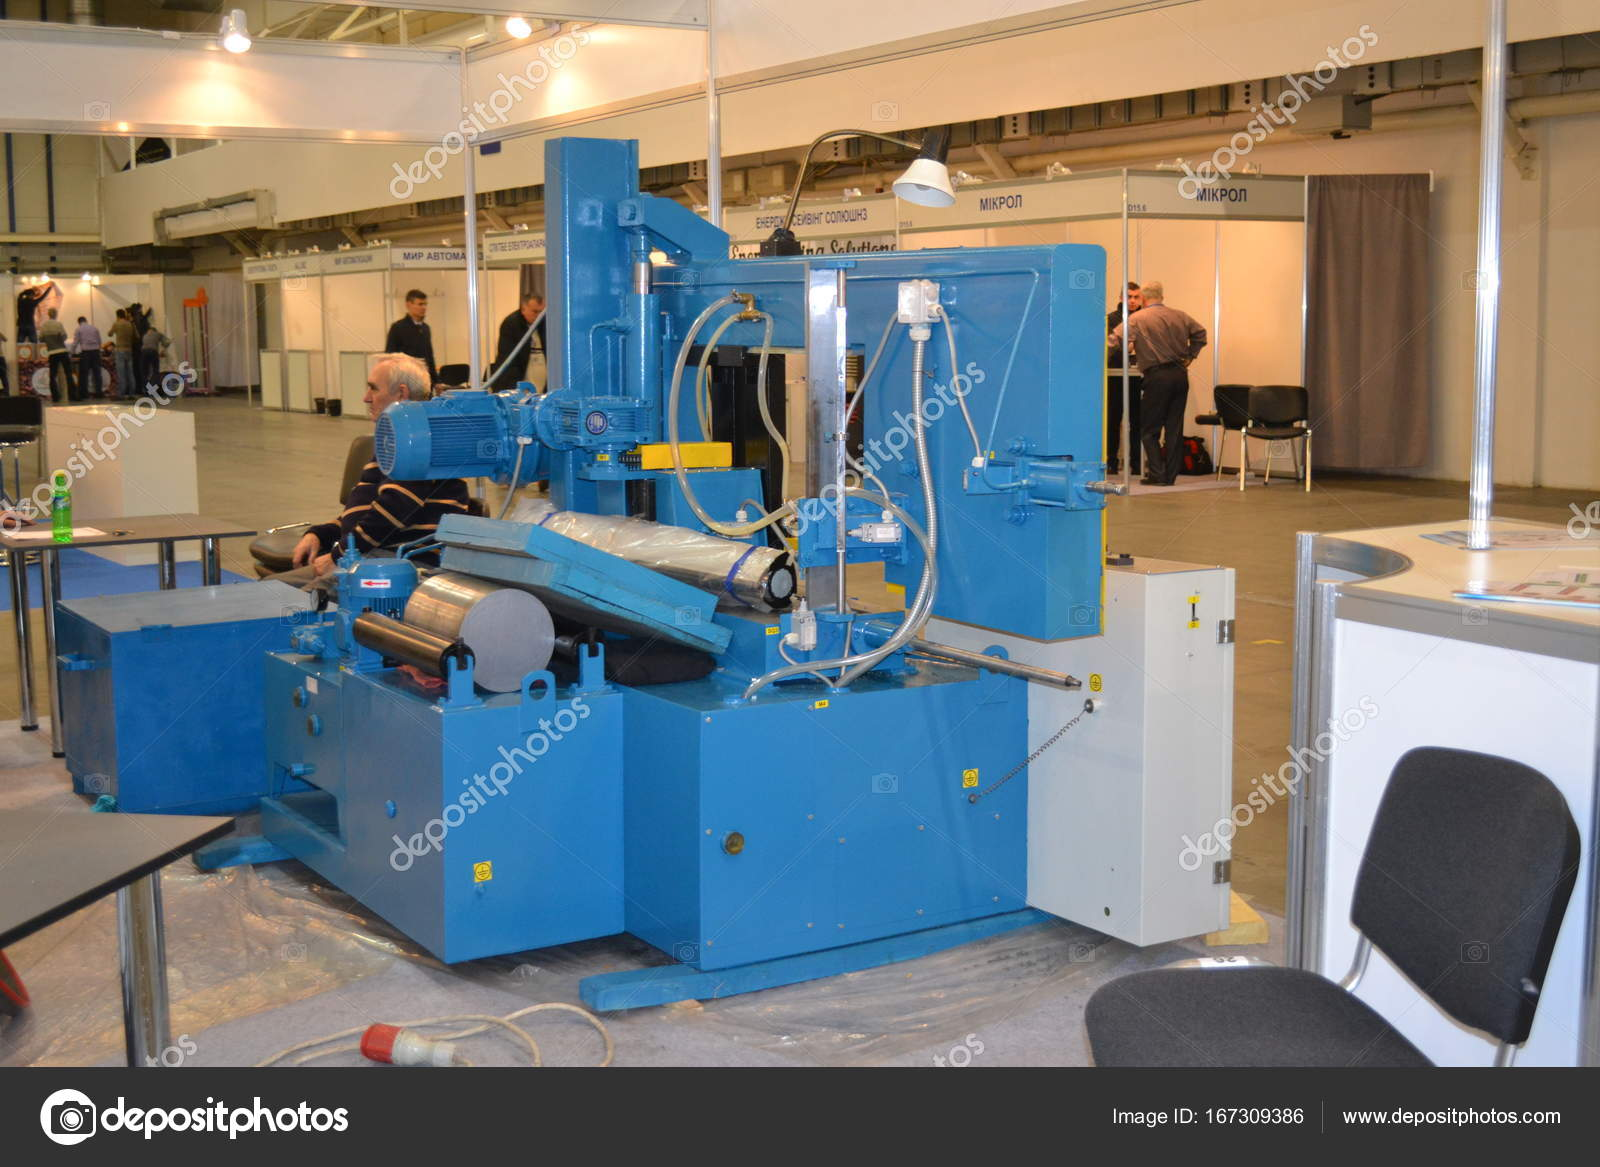 Industrial machinery, Industrial equipment, Industrial facilities and  machine tools, machinery lathes – Stock Editorial Photo © Marina1408  #167309386